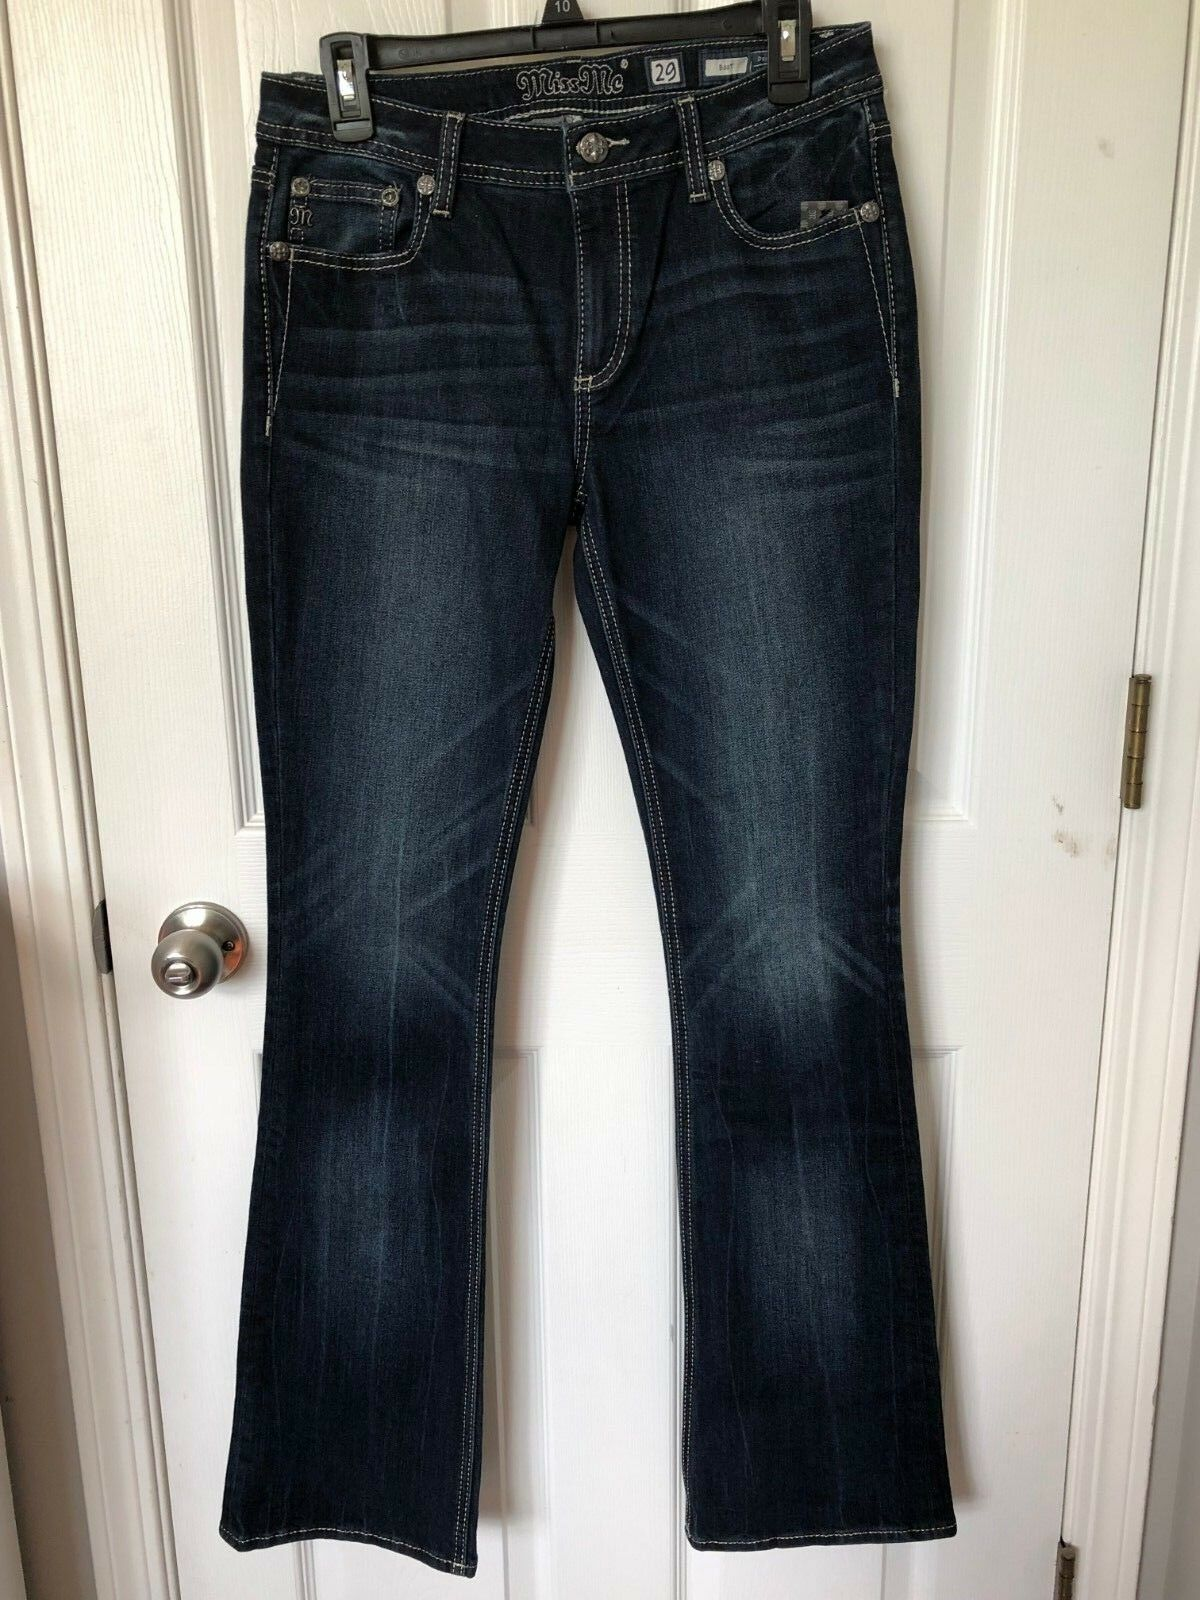 MISS ME Women's Boot Cut Jean Size 29 New with tag